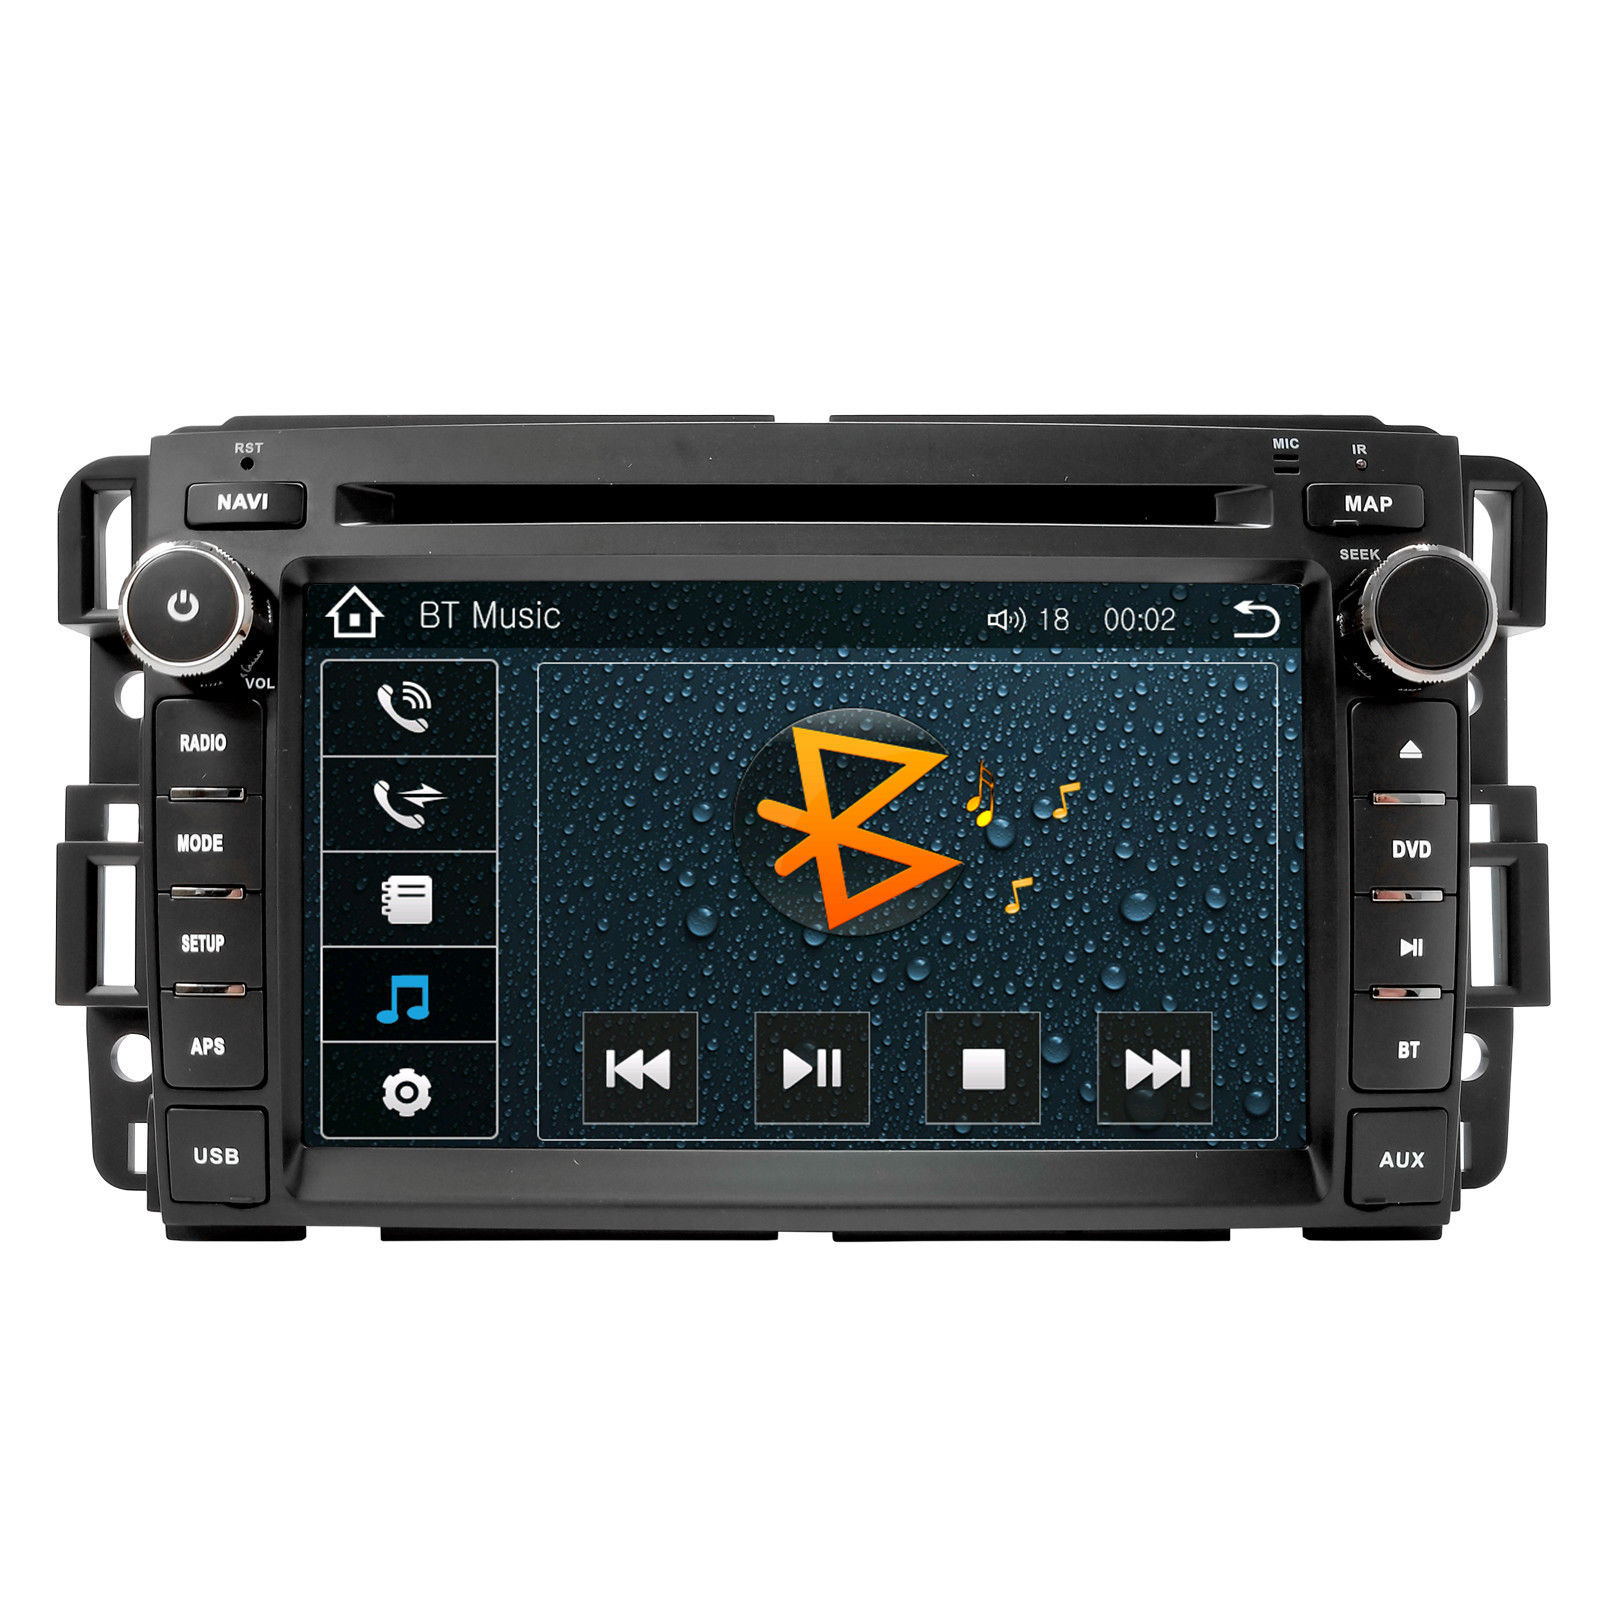 IN DASH DOUBLE DIN TOUCH SCREEN GPS NAVIGATION RADIO FOR 07-13 CHEVROLET TAHOE